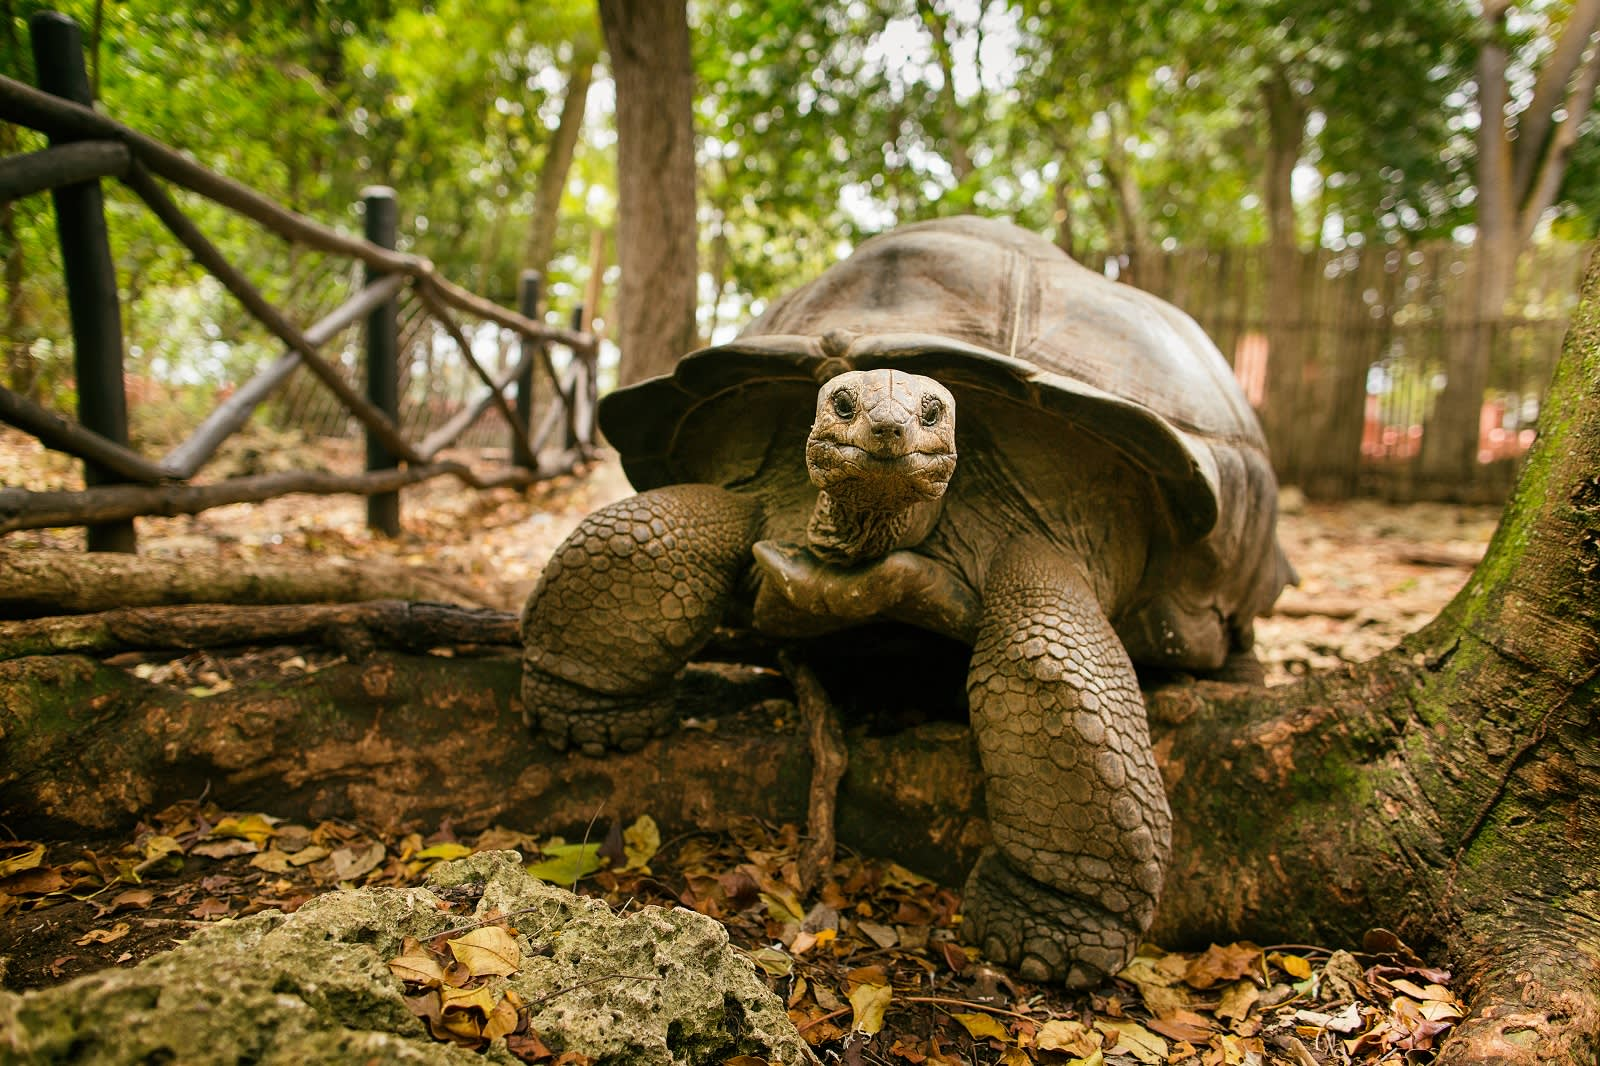 An Aldabra giant tortoise looks out from its shell on Prison Island off Zanzibar.